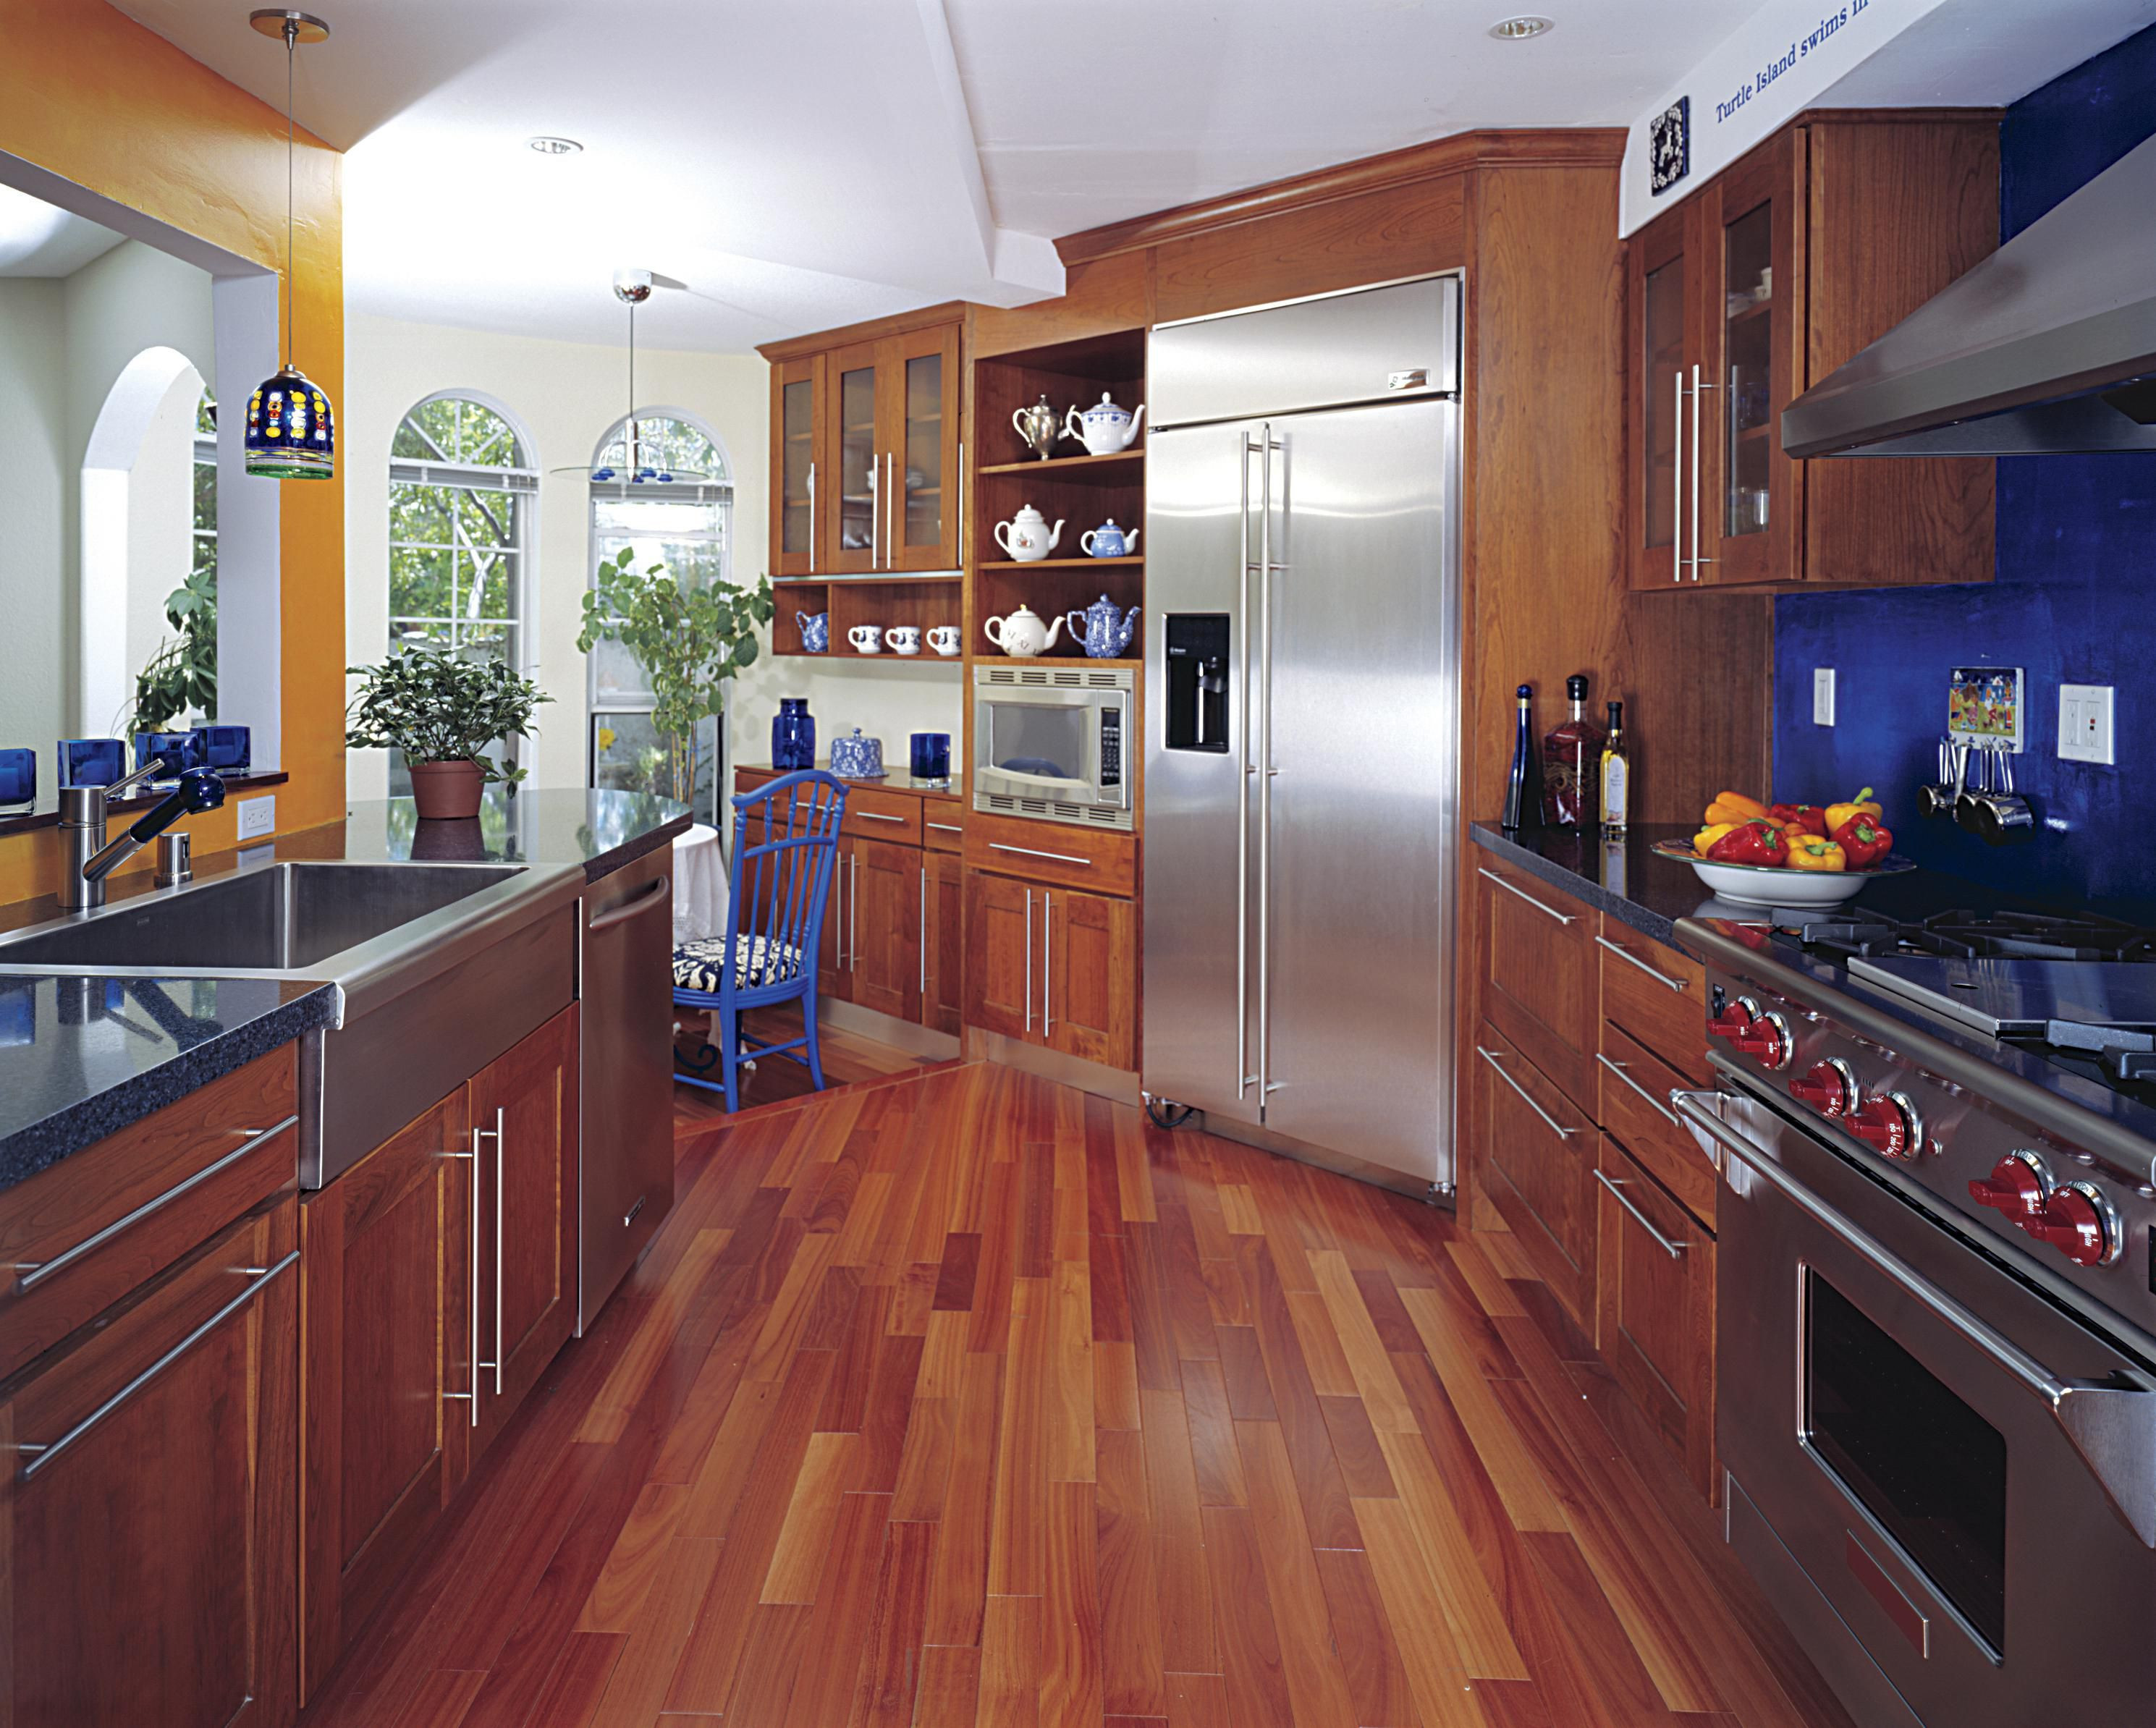 installing engineered hardwood flooring in basement of hardwood floor in a kitchen is this allowed inside 186828472 56a49f3a5f9b58b7d0d7e142